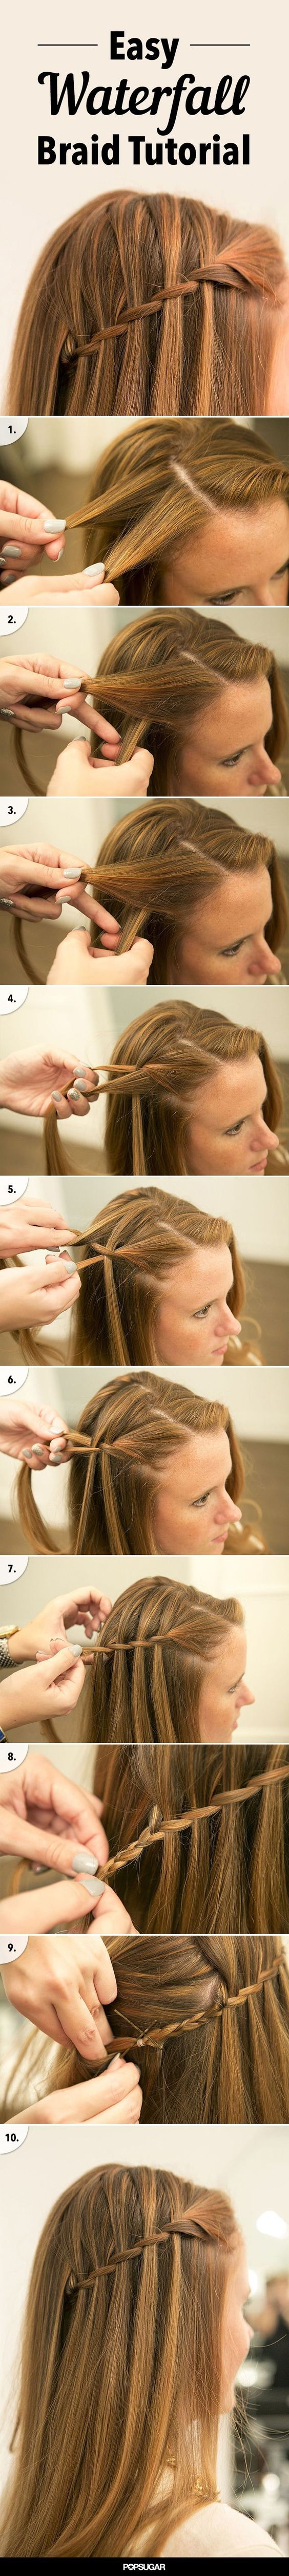 Waterfall braid.: